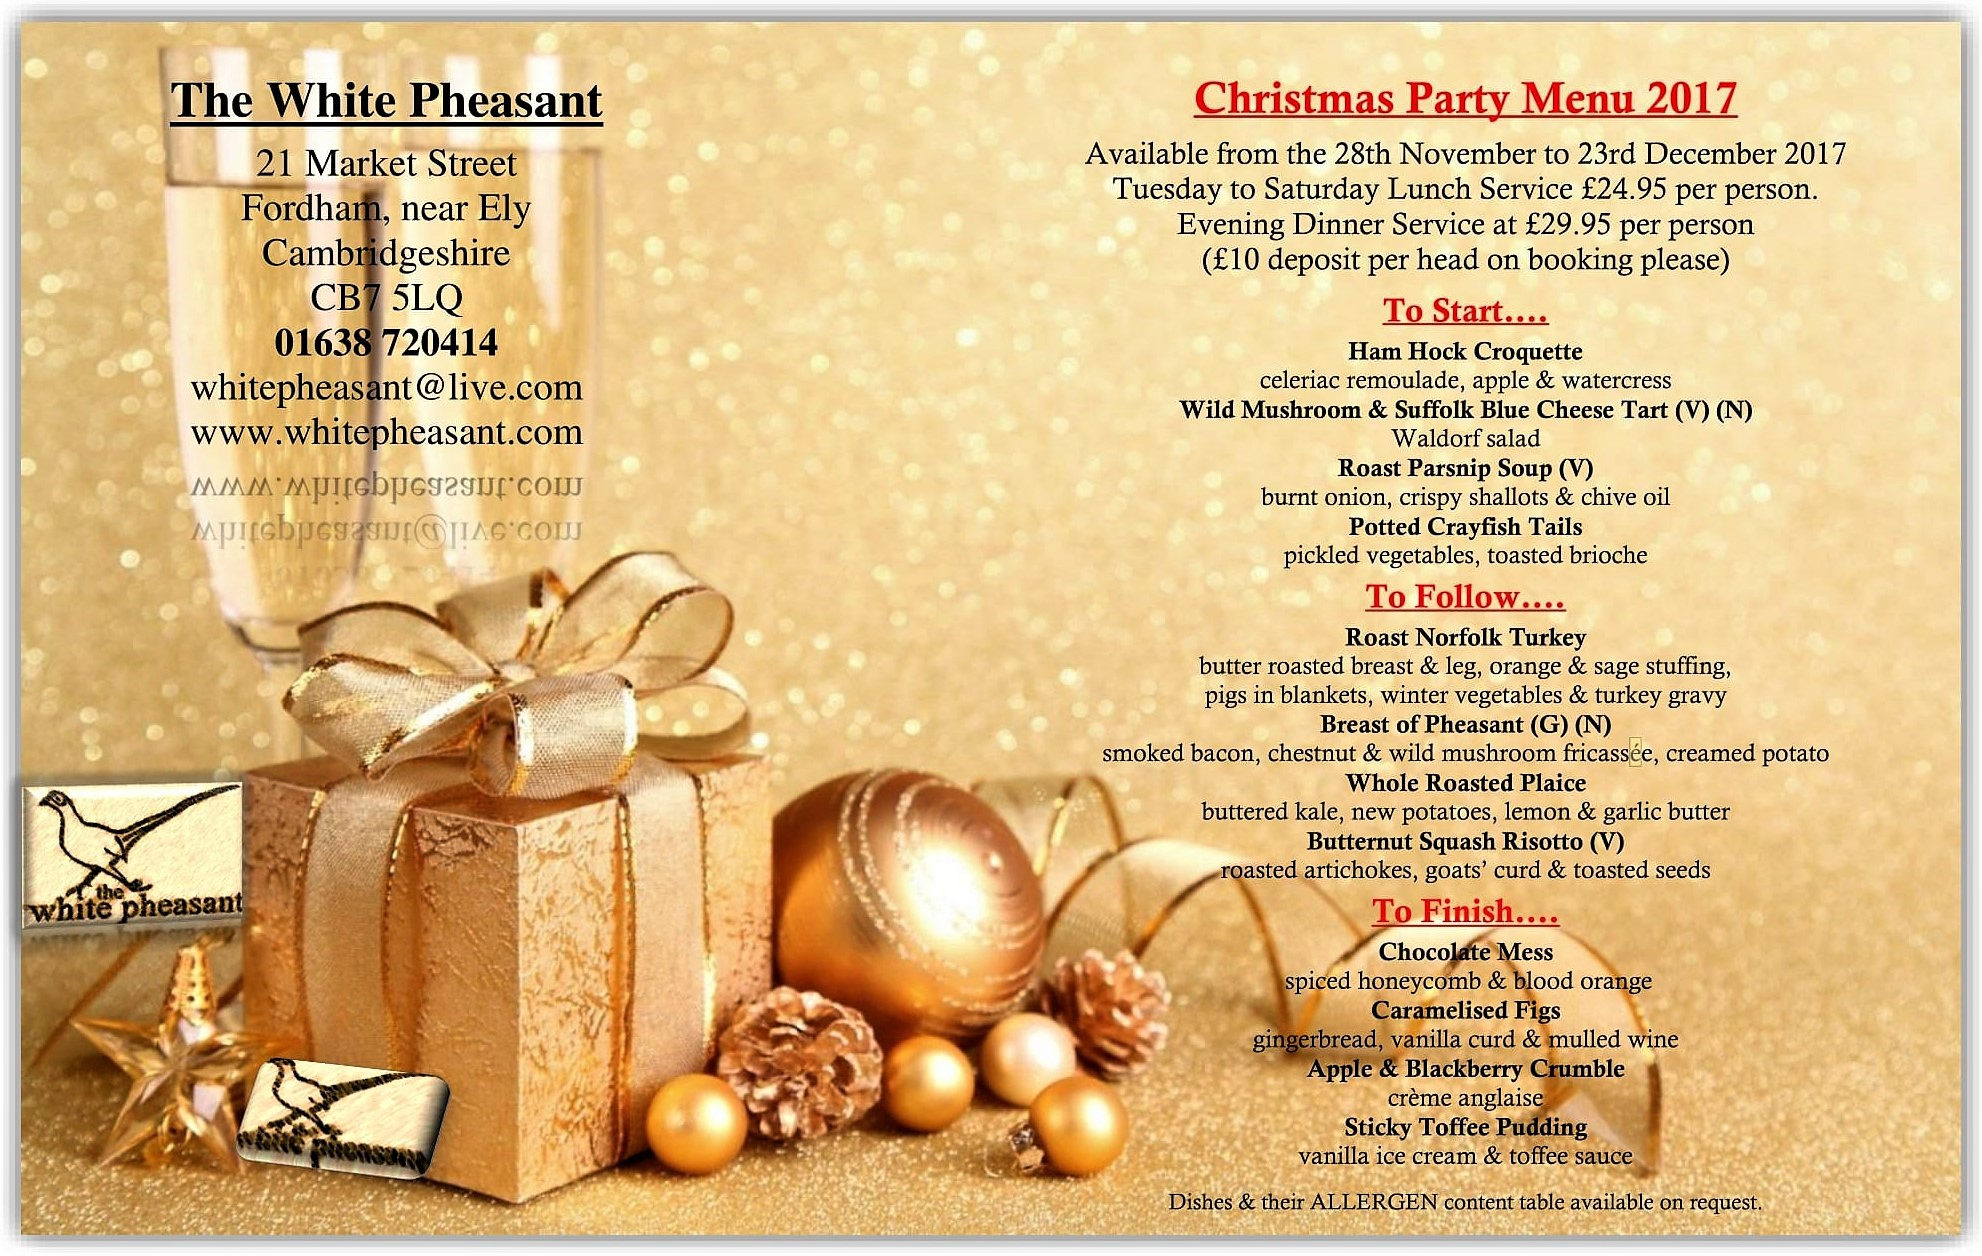 Christmas Parties at The White Pheasant